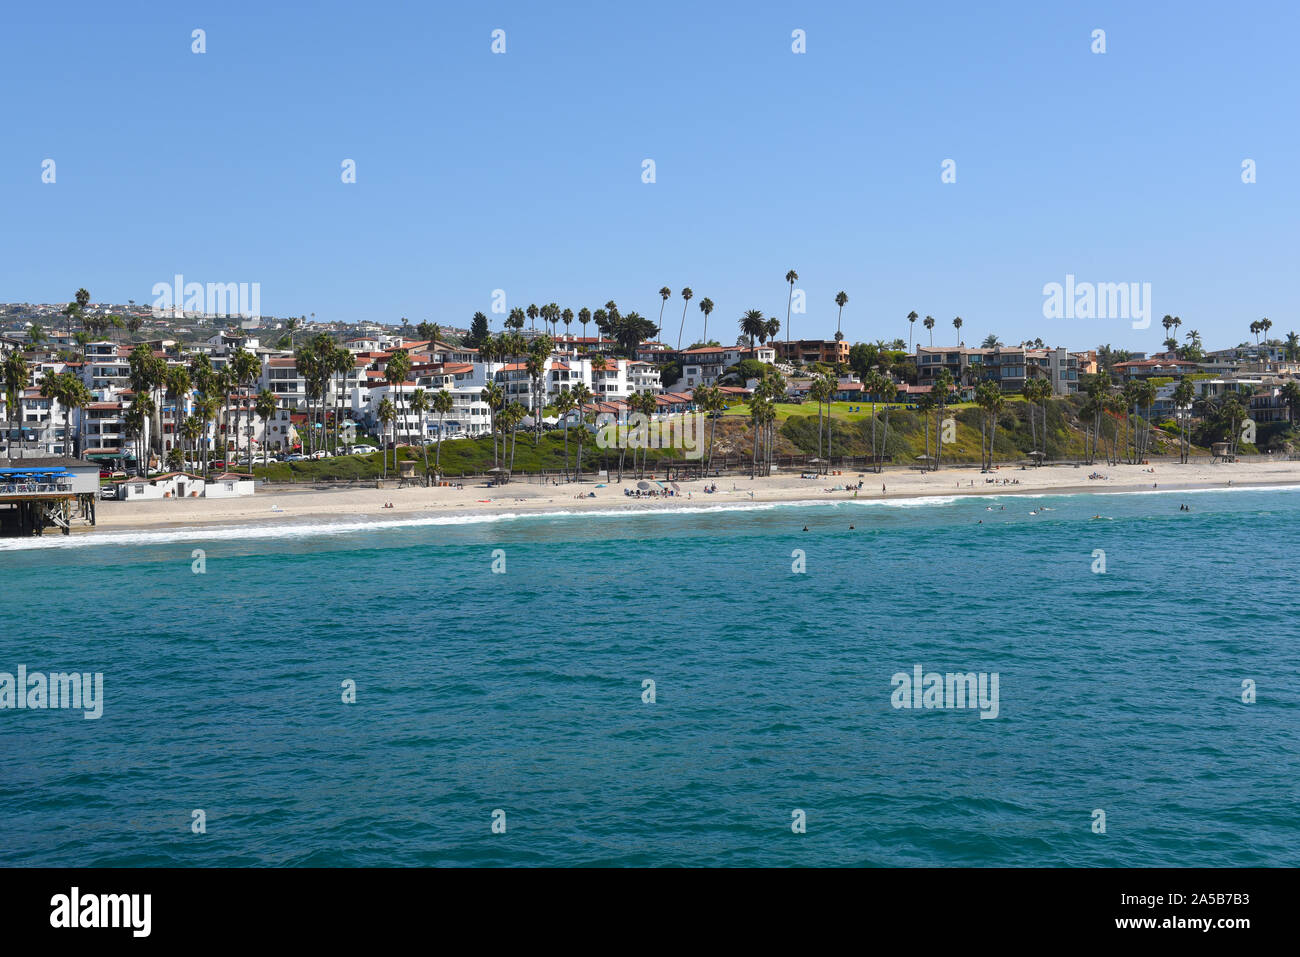 SAN CLEMENTE, CALIFORNIA - 18 OCT 2019: The beach and coastline with surfers and sunbathers seen from the pier in the South Orange County beach town. Stock Photo